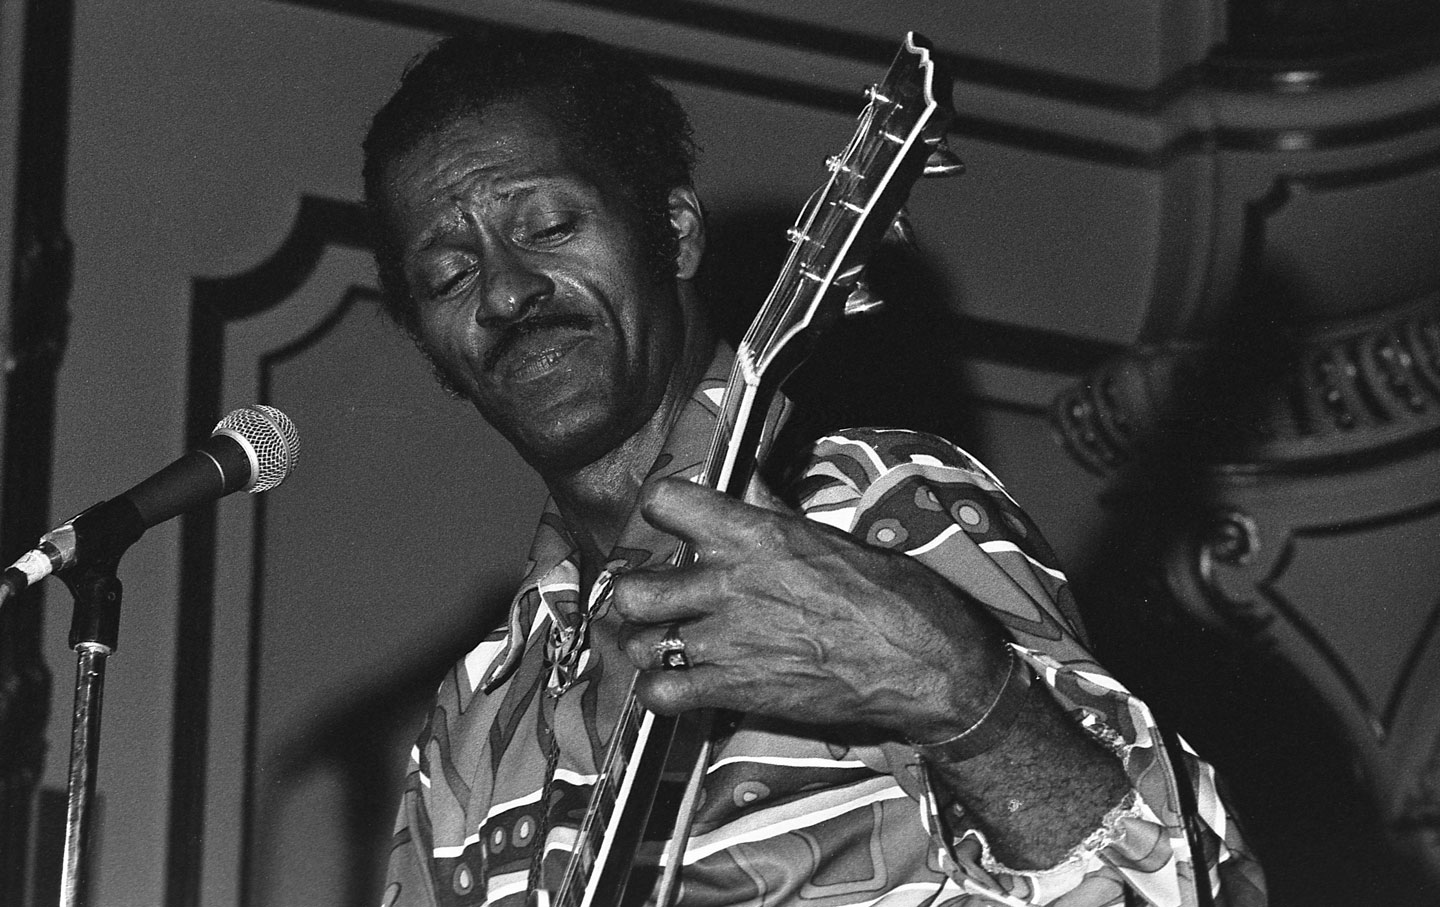 Chuck Berry's Final Album to Be Released This Week